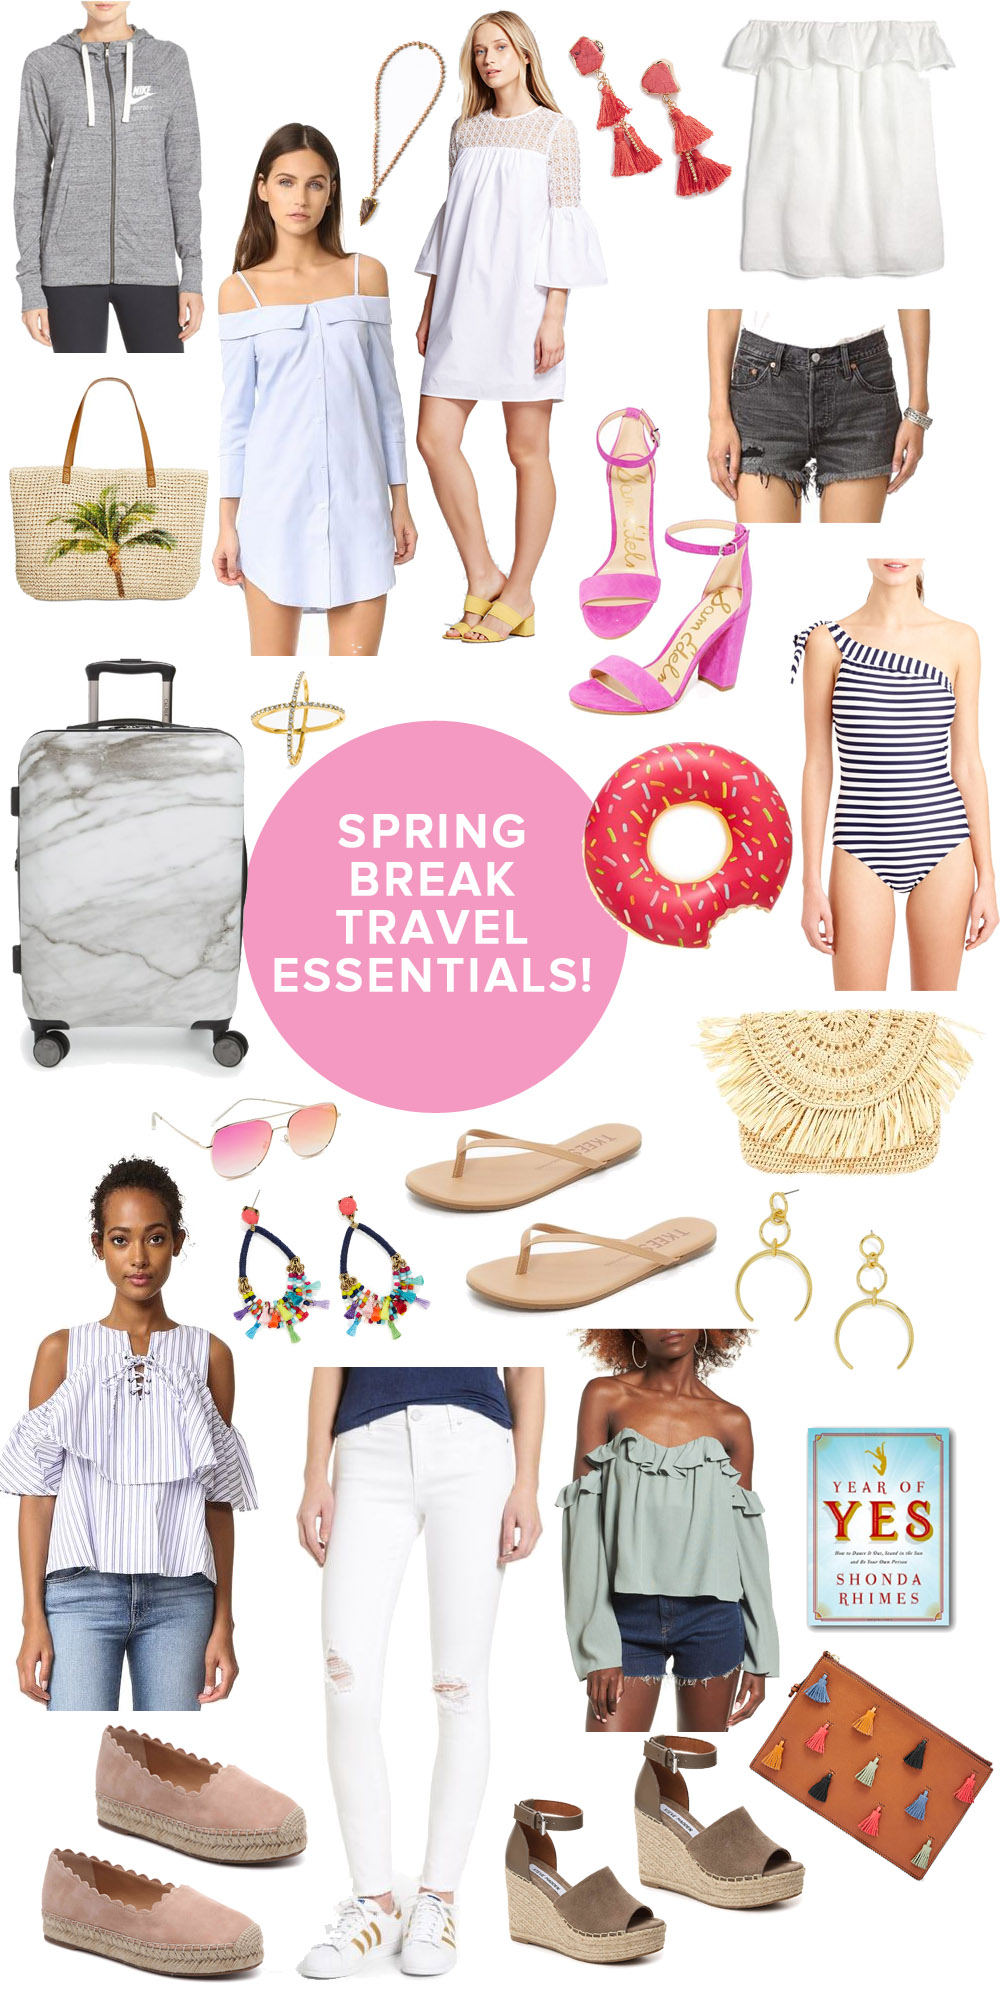 Spring Travel Essentials: What to Pack for a Weekend Getaway! // The Modern Savvy